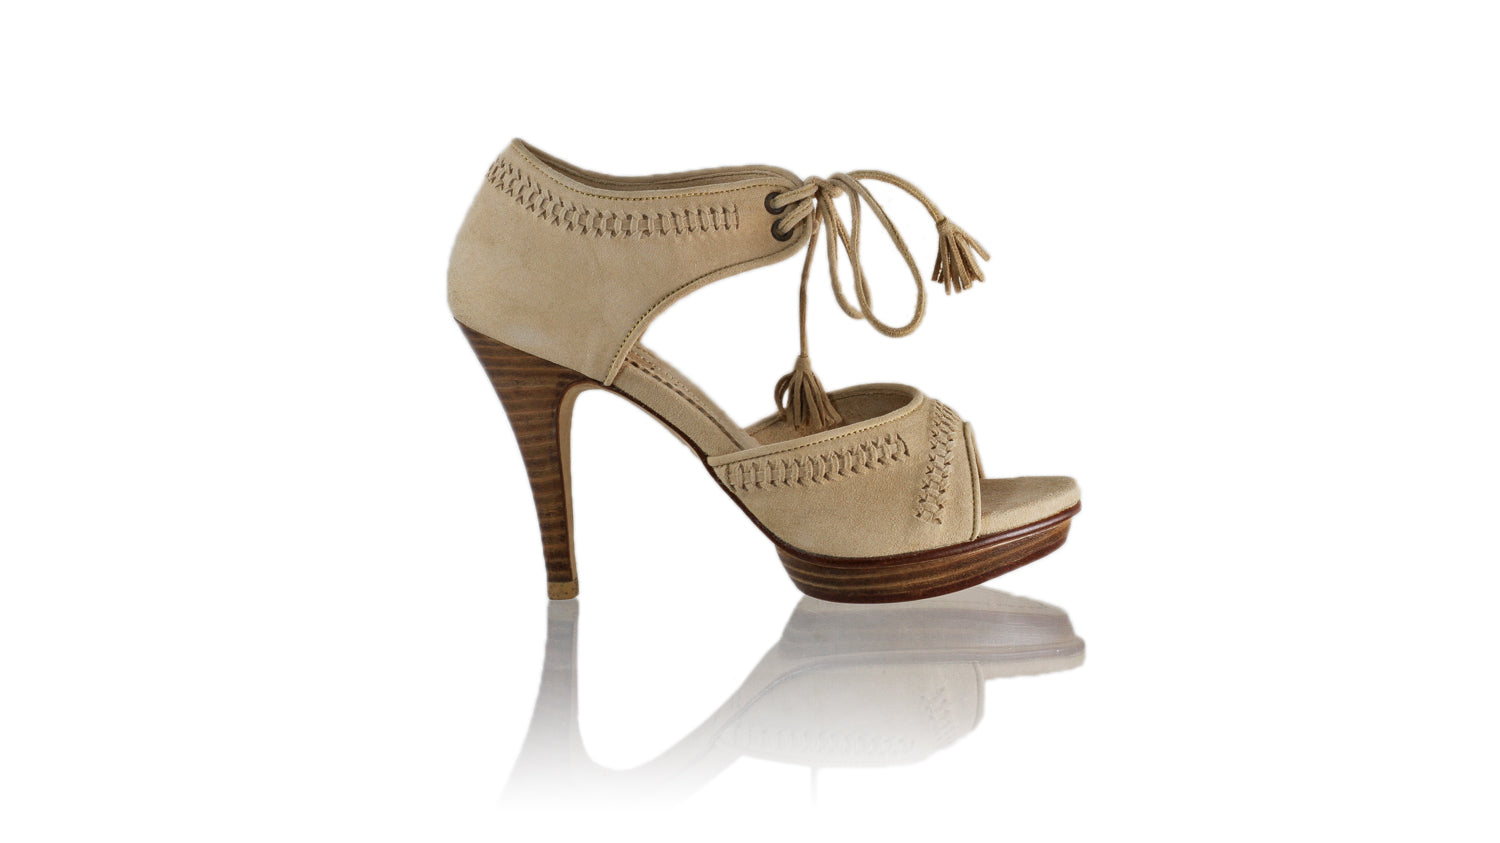 Leather-shoes-Karli 115mm SH PF - Nude Suede-sandals higheel-NILUH DJELANTIK-NILUH DJELANTIK